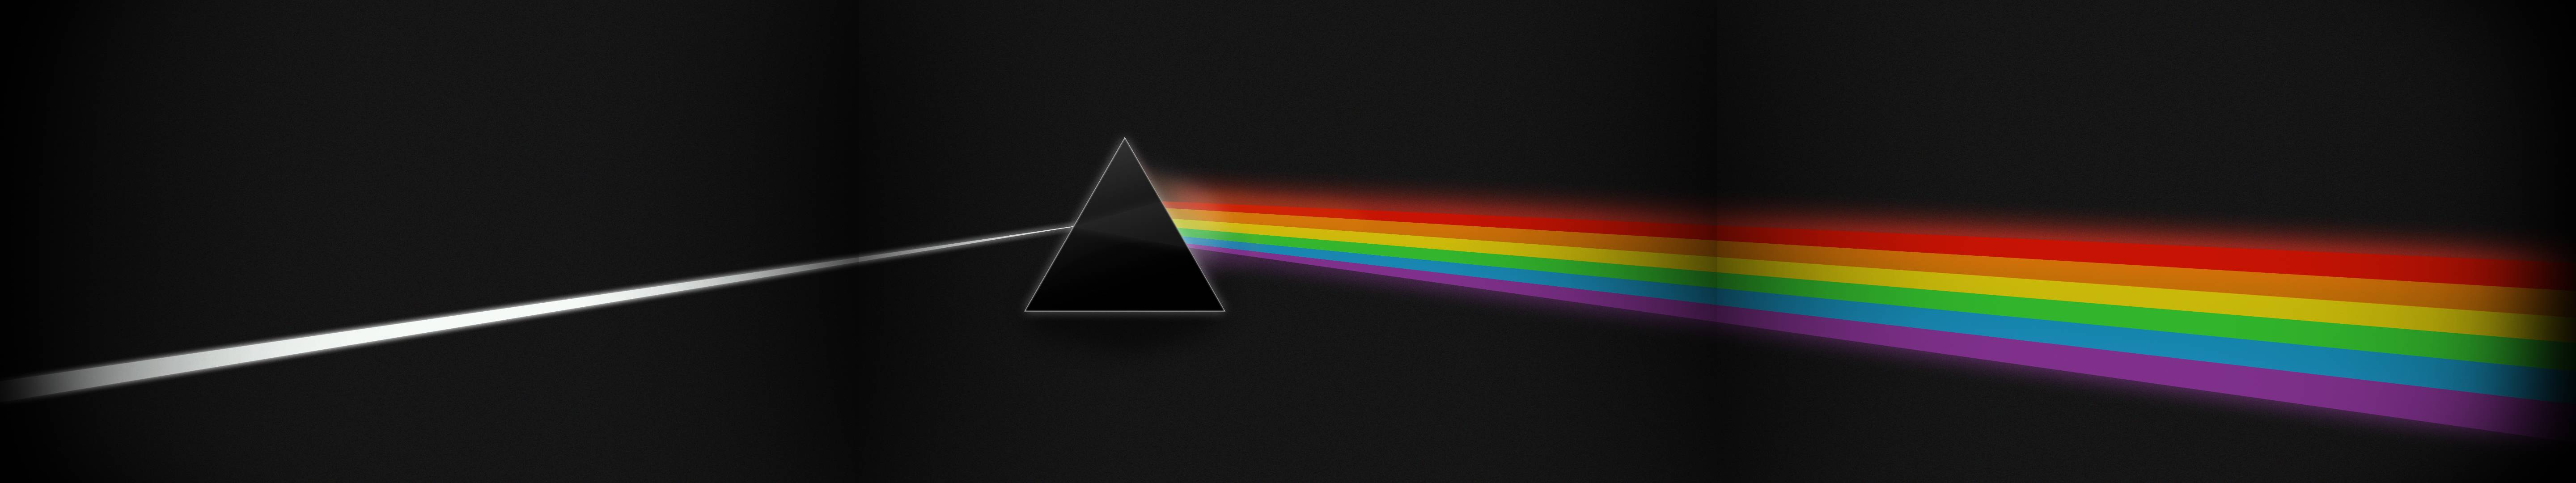 DeviantArt: More Like Dark Side of the Moon